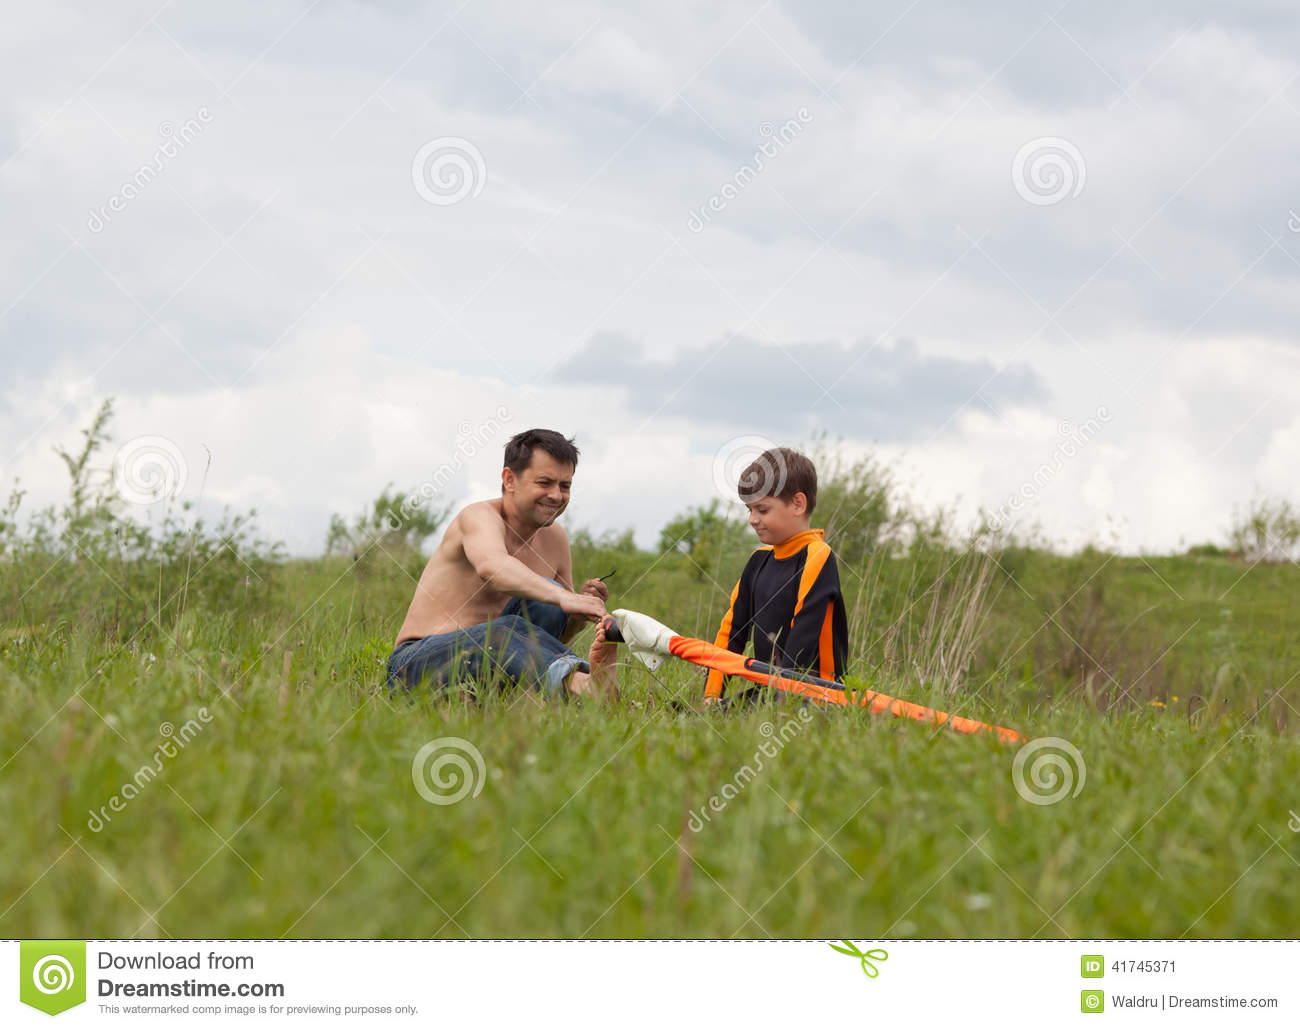 Download Windsurfing lesson stock image. Image of grass, europe - 41745371